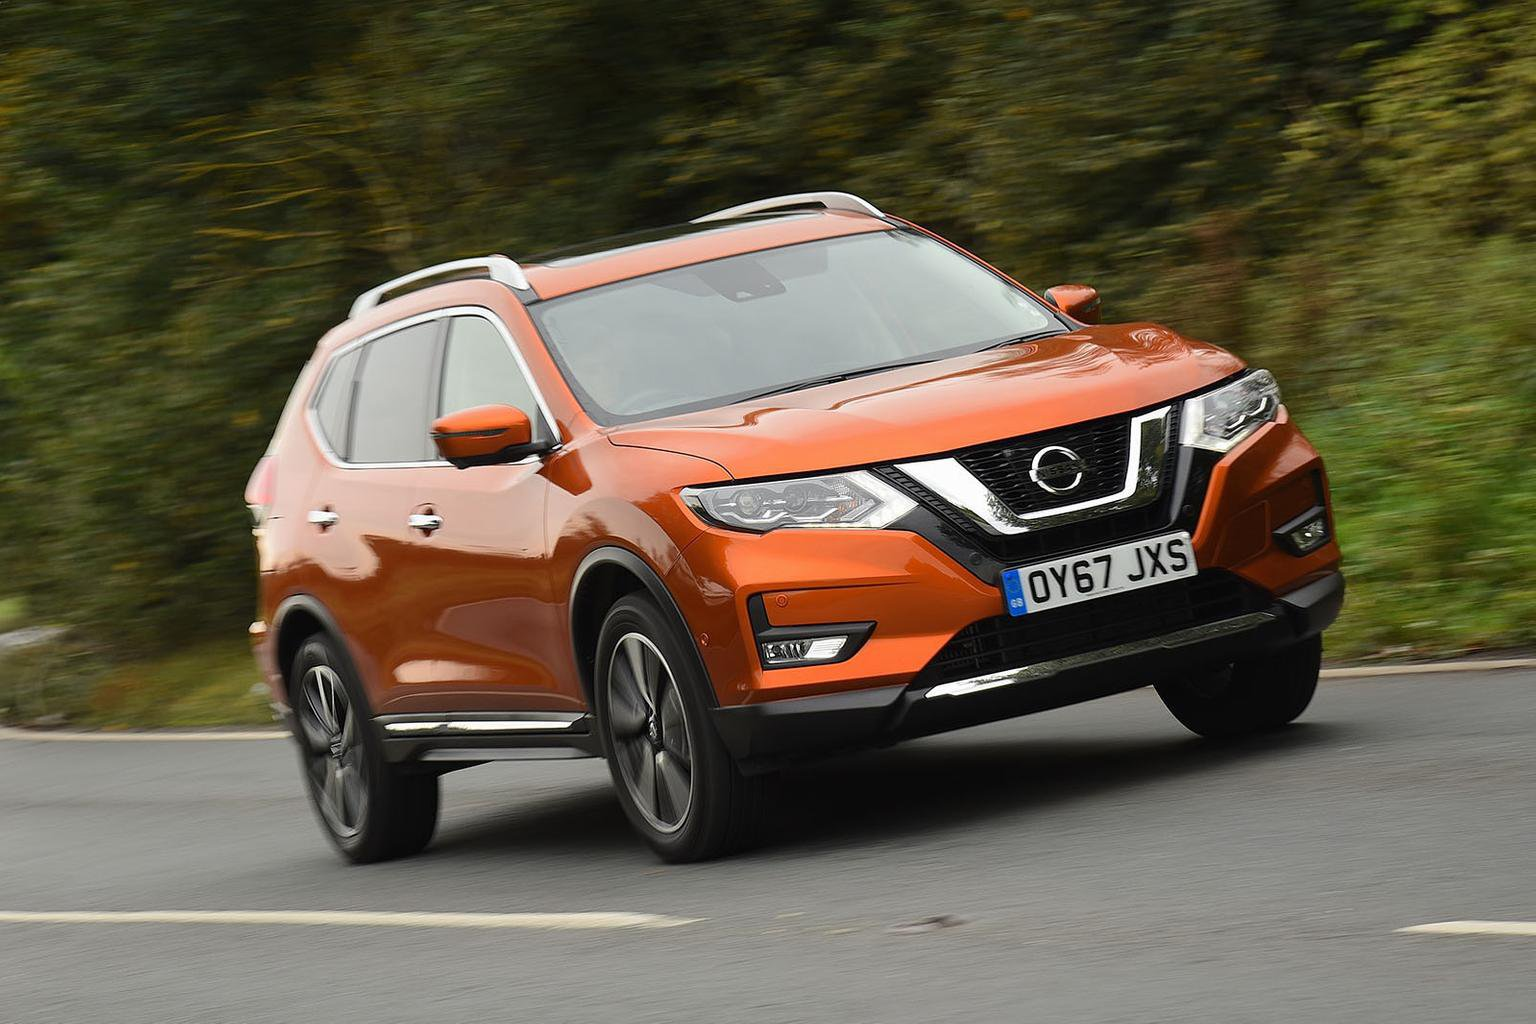 New Nissan X-Trail & Peugeot 5008 vs Skoda Kodiaq